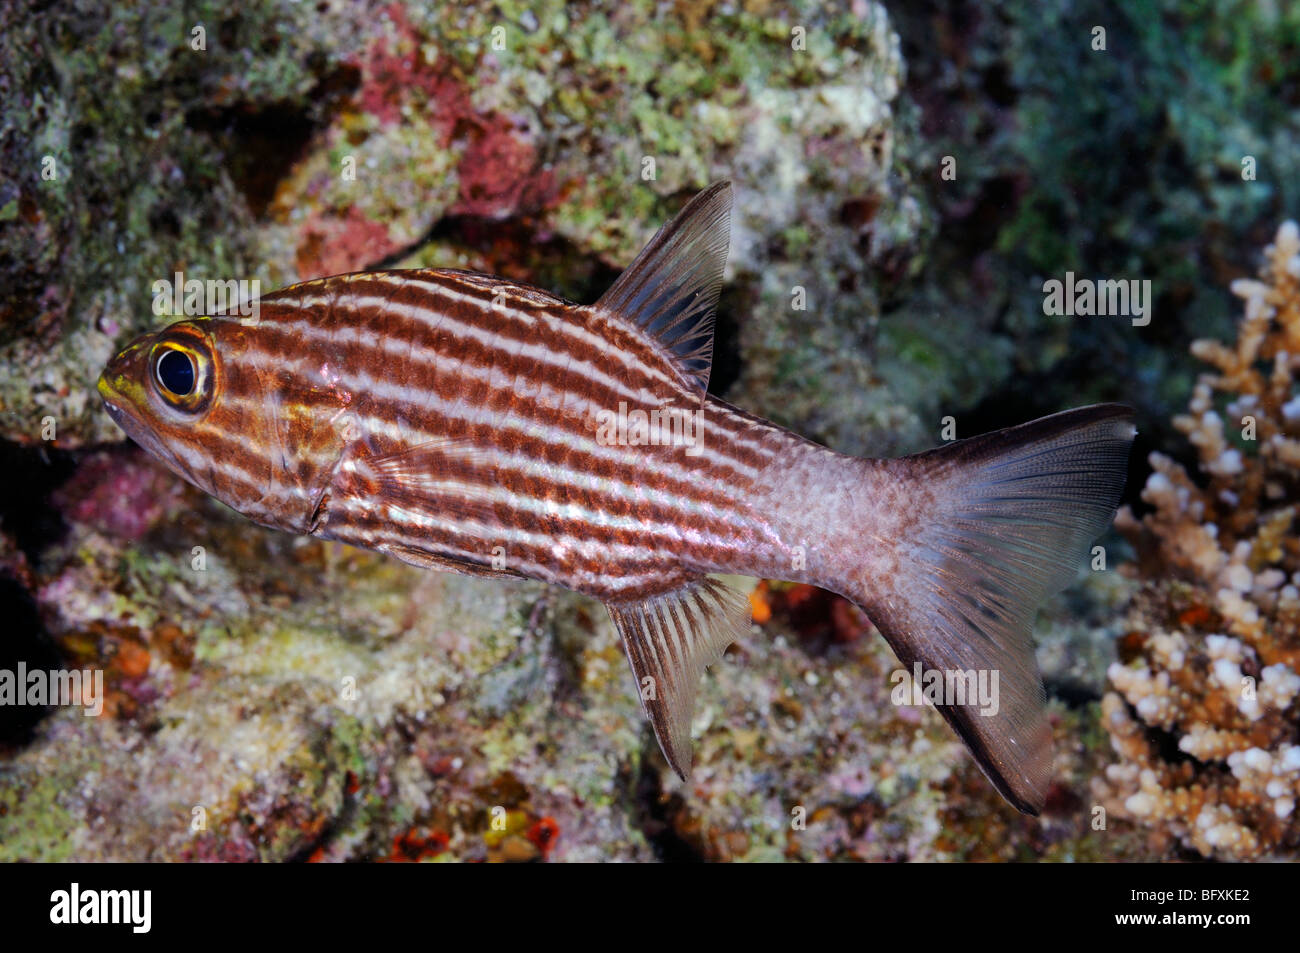 'Tiger cardinalfish' fish, Cheilodipterus macrodon, on coral reef, 'Red Sea' - Stock Image